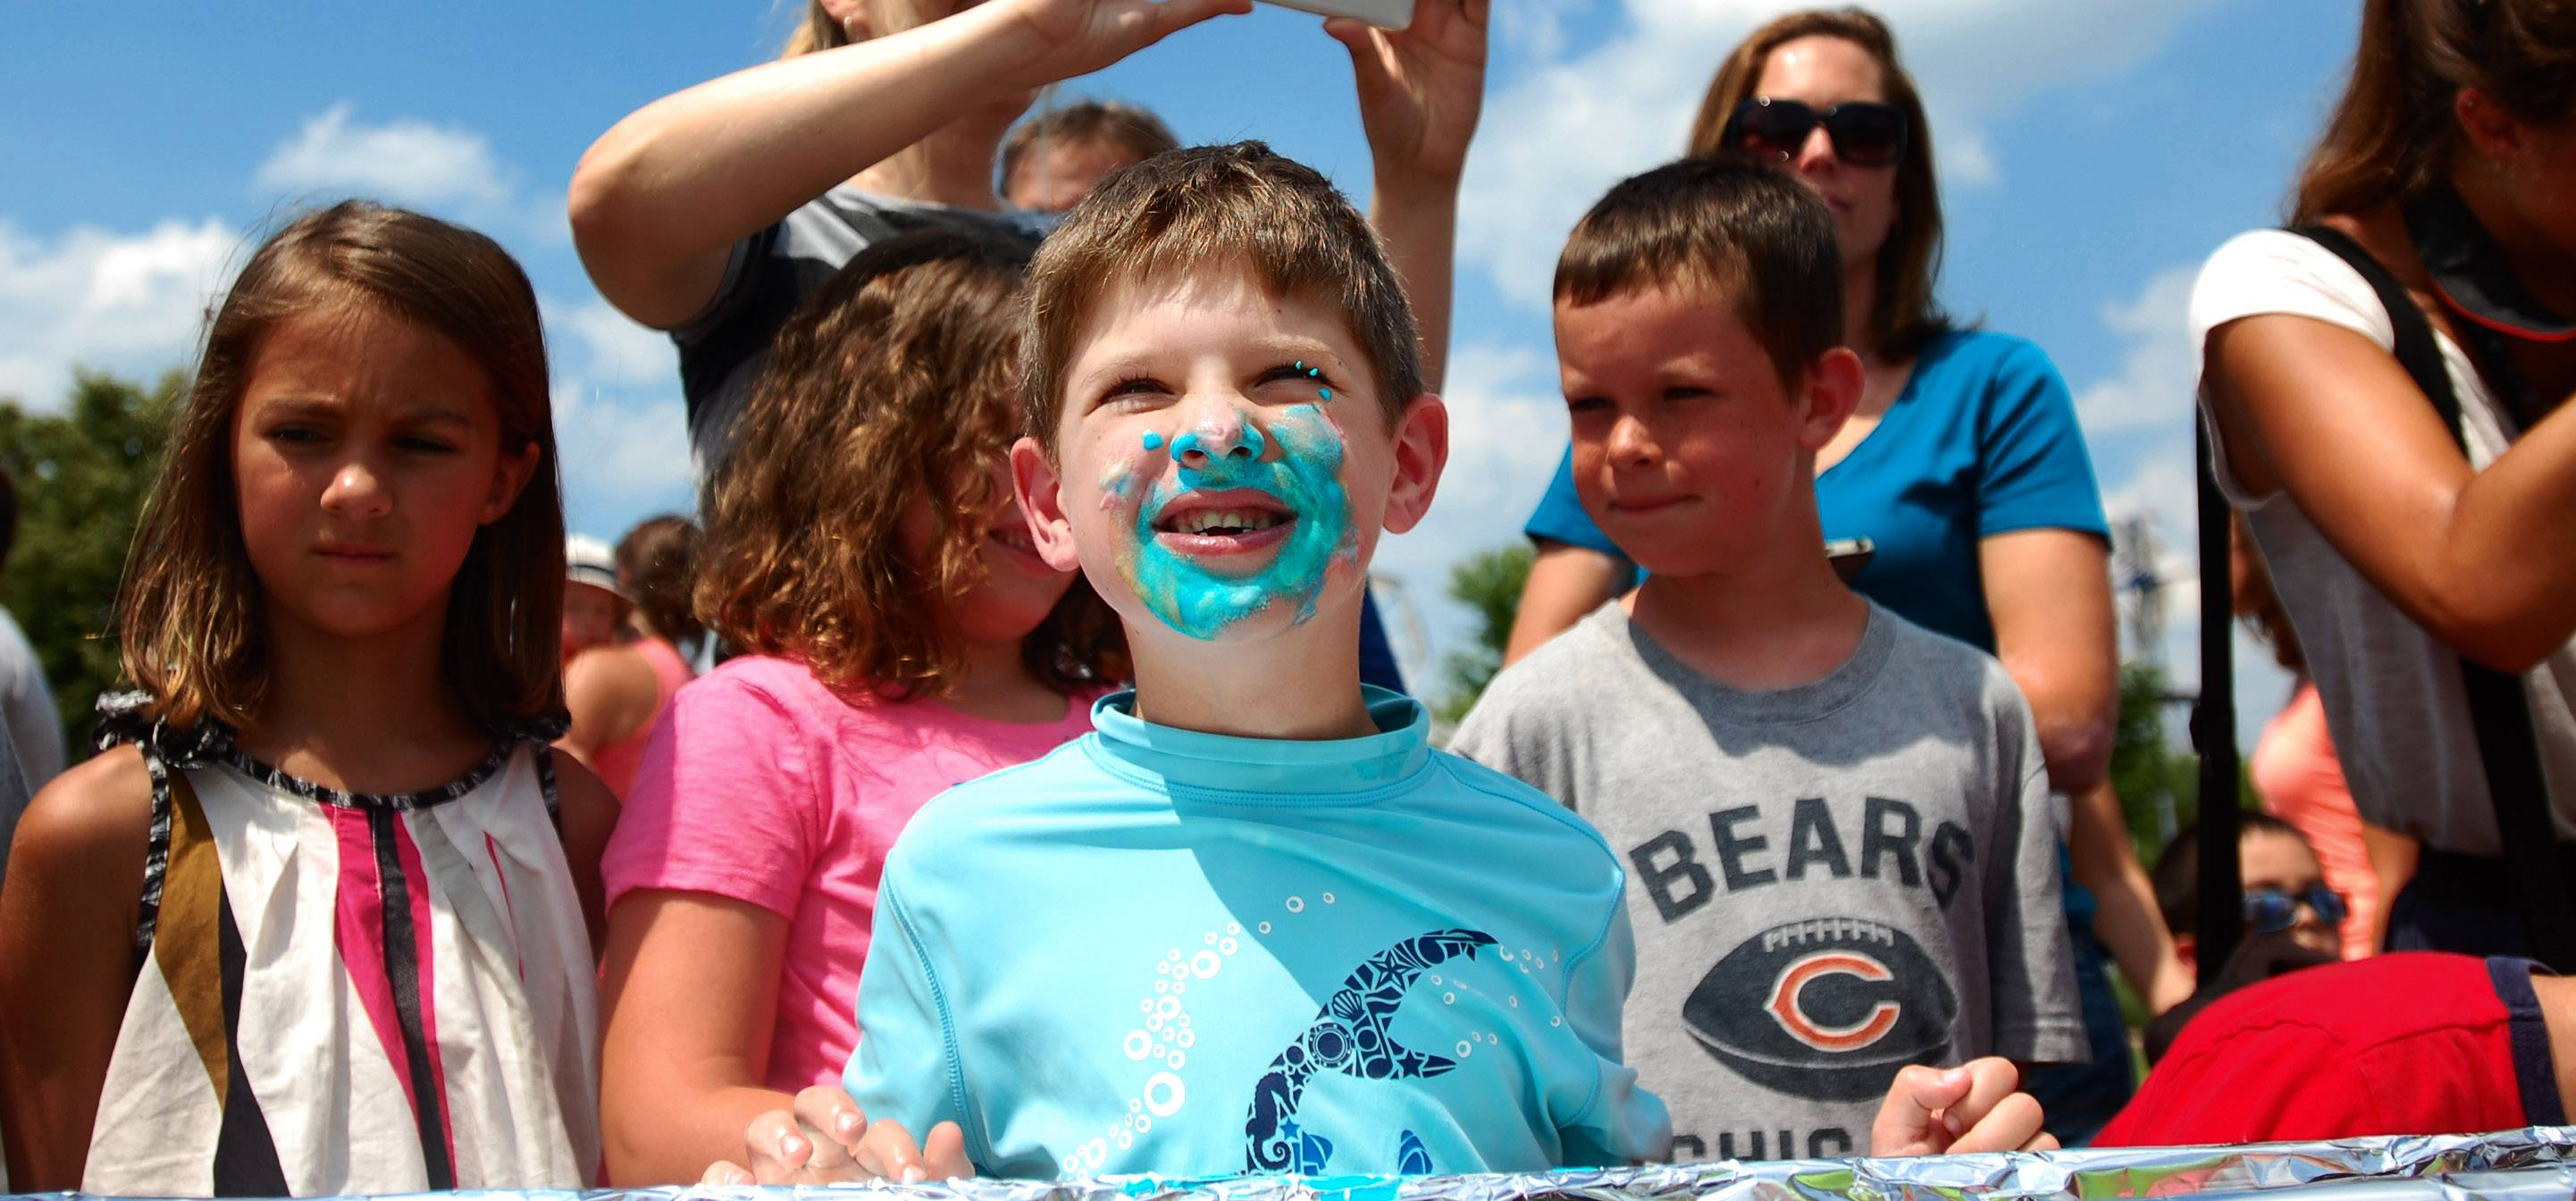 Joe Schroeder, 6, of Batavia emerges smiling at his family after completing an ice cream eating contest at the Windmill City Festival in Batavia.